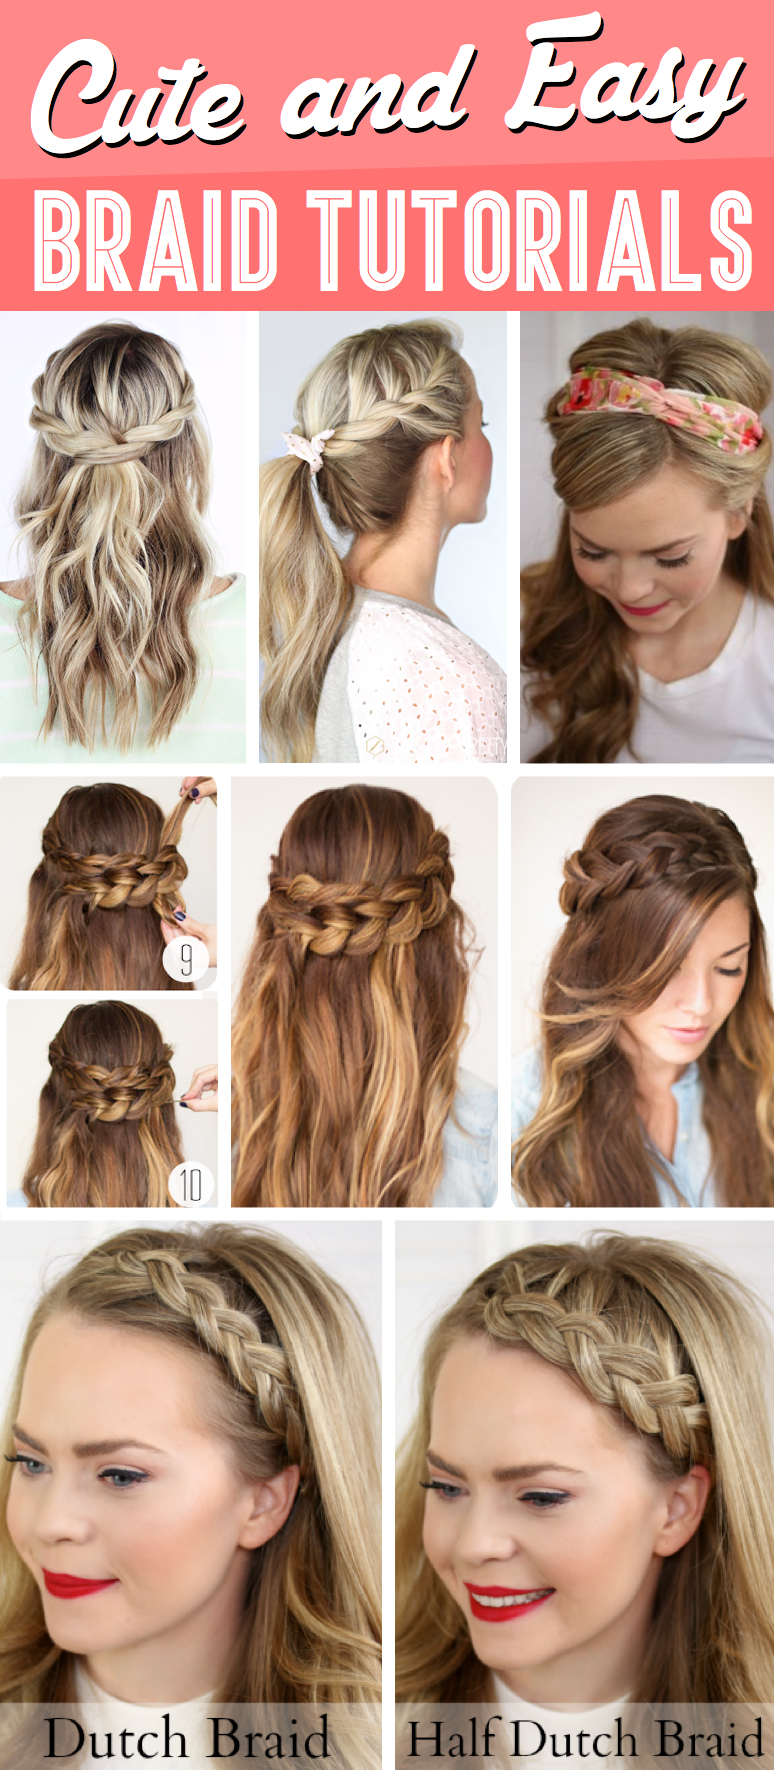 Peachy 30 Cute And Easy Braid Tutorials That Are Perfect For Any Hairstyle Inspiration Daily Dogsangcom